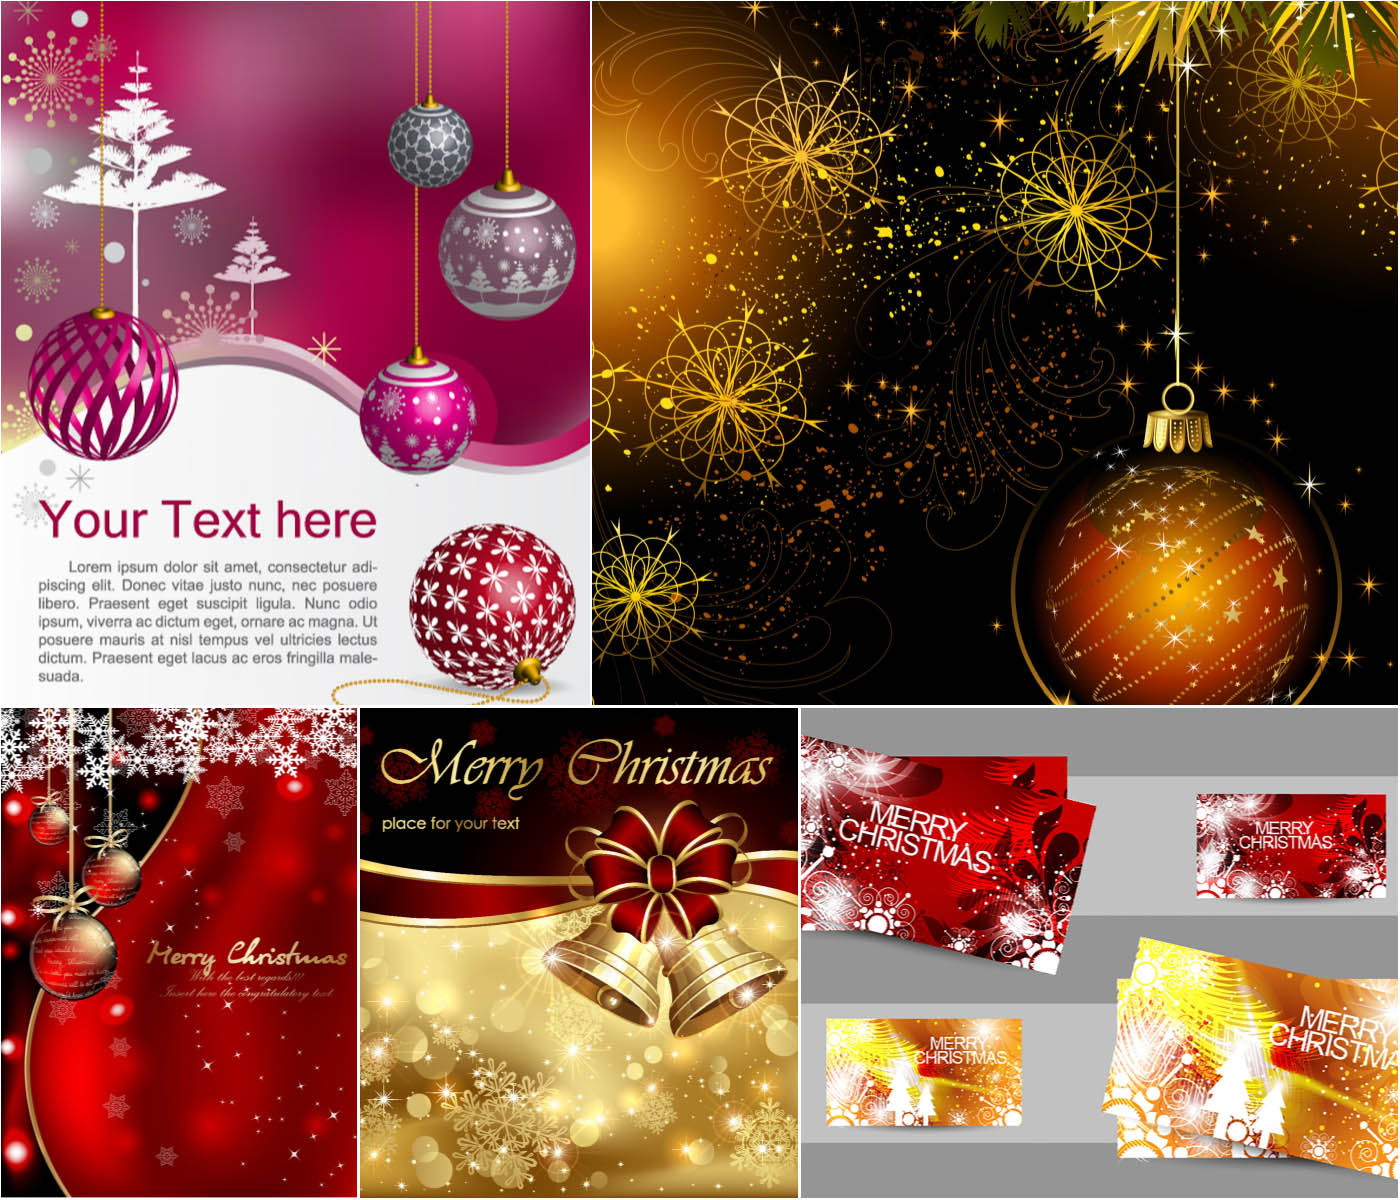 Merry Christmas greeting cards vector set 3